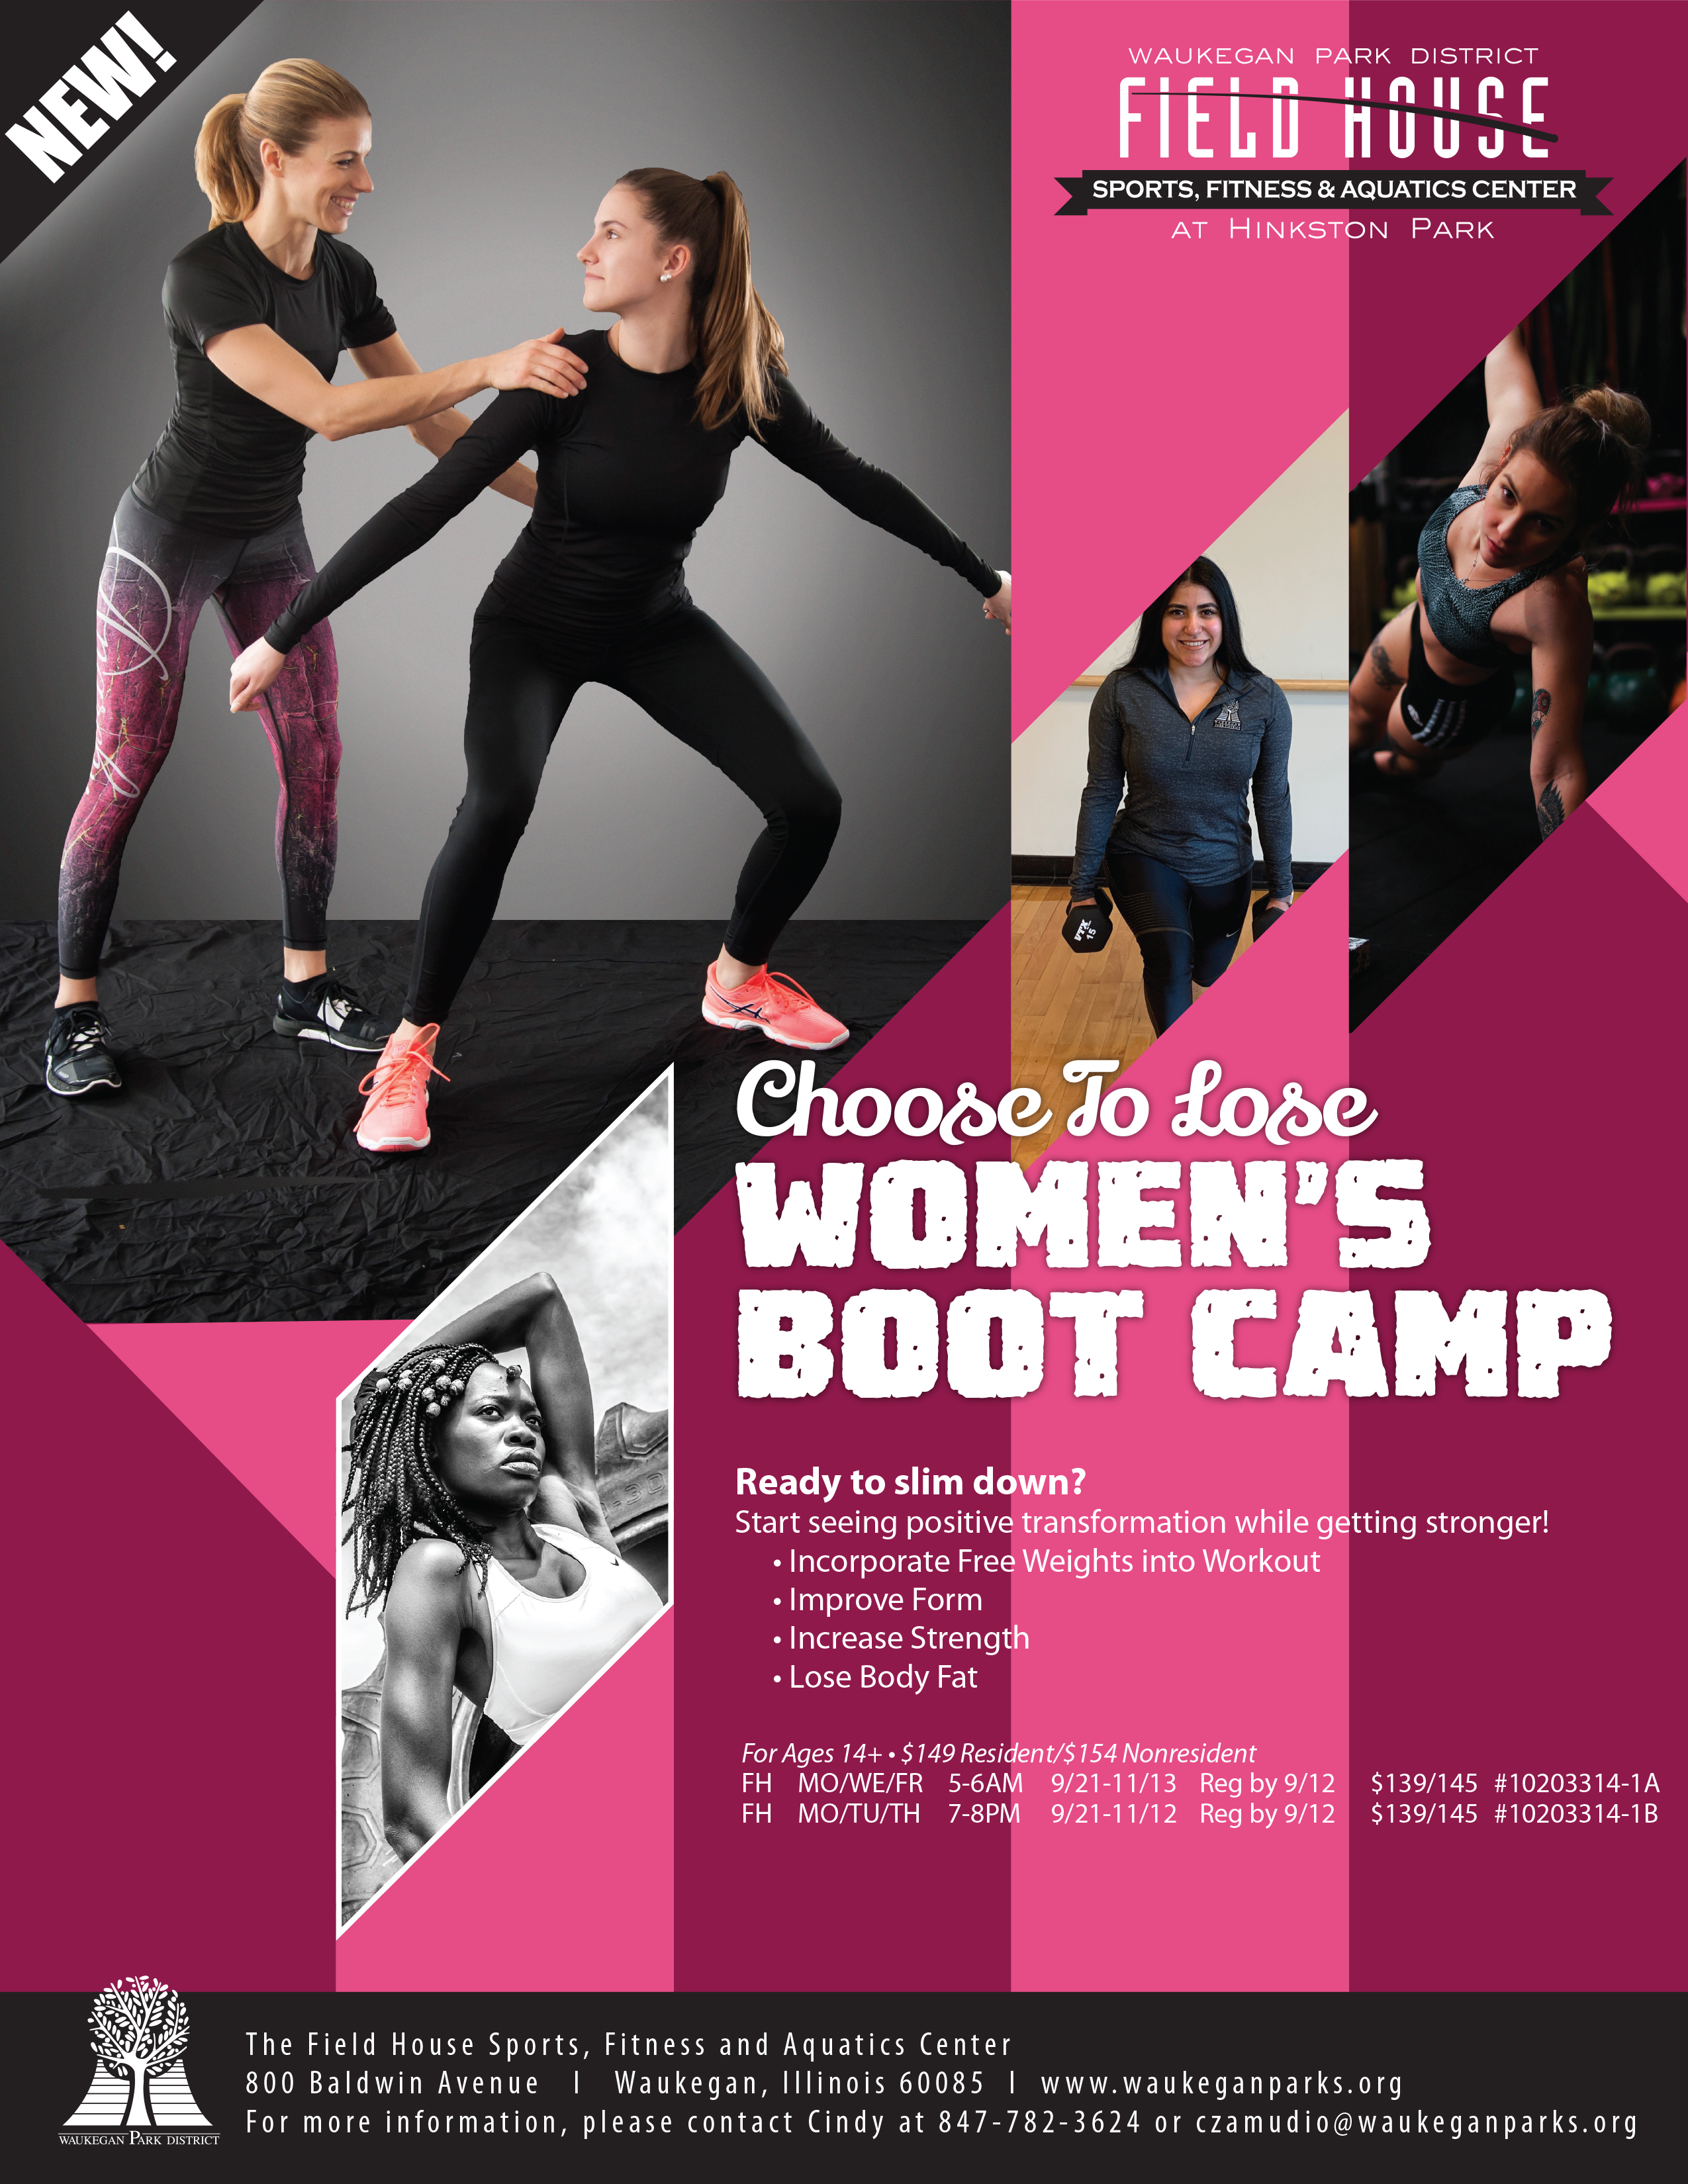 Choose to Lose Women's Boot Camp